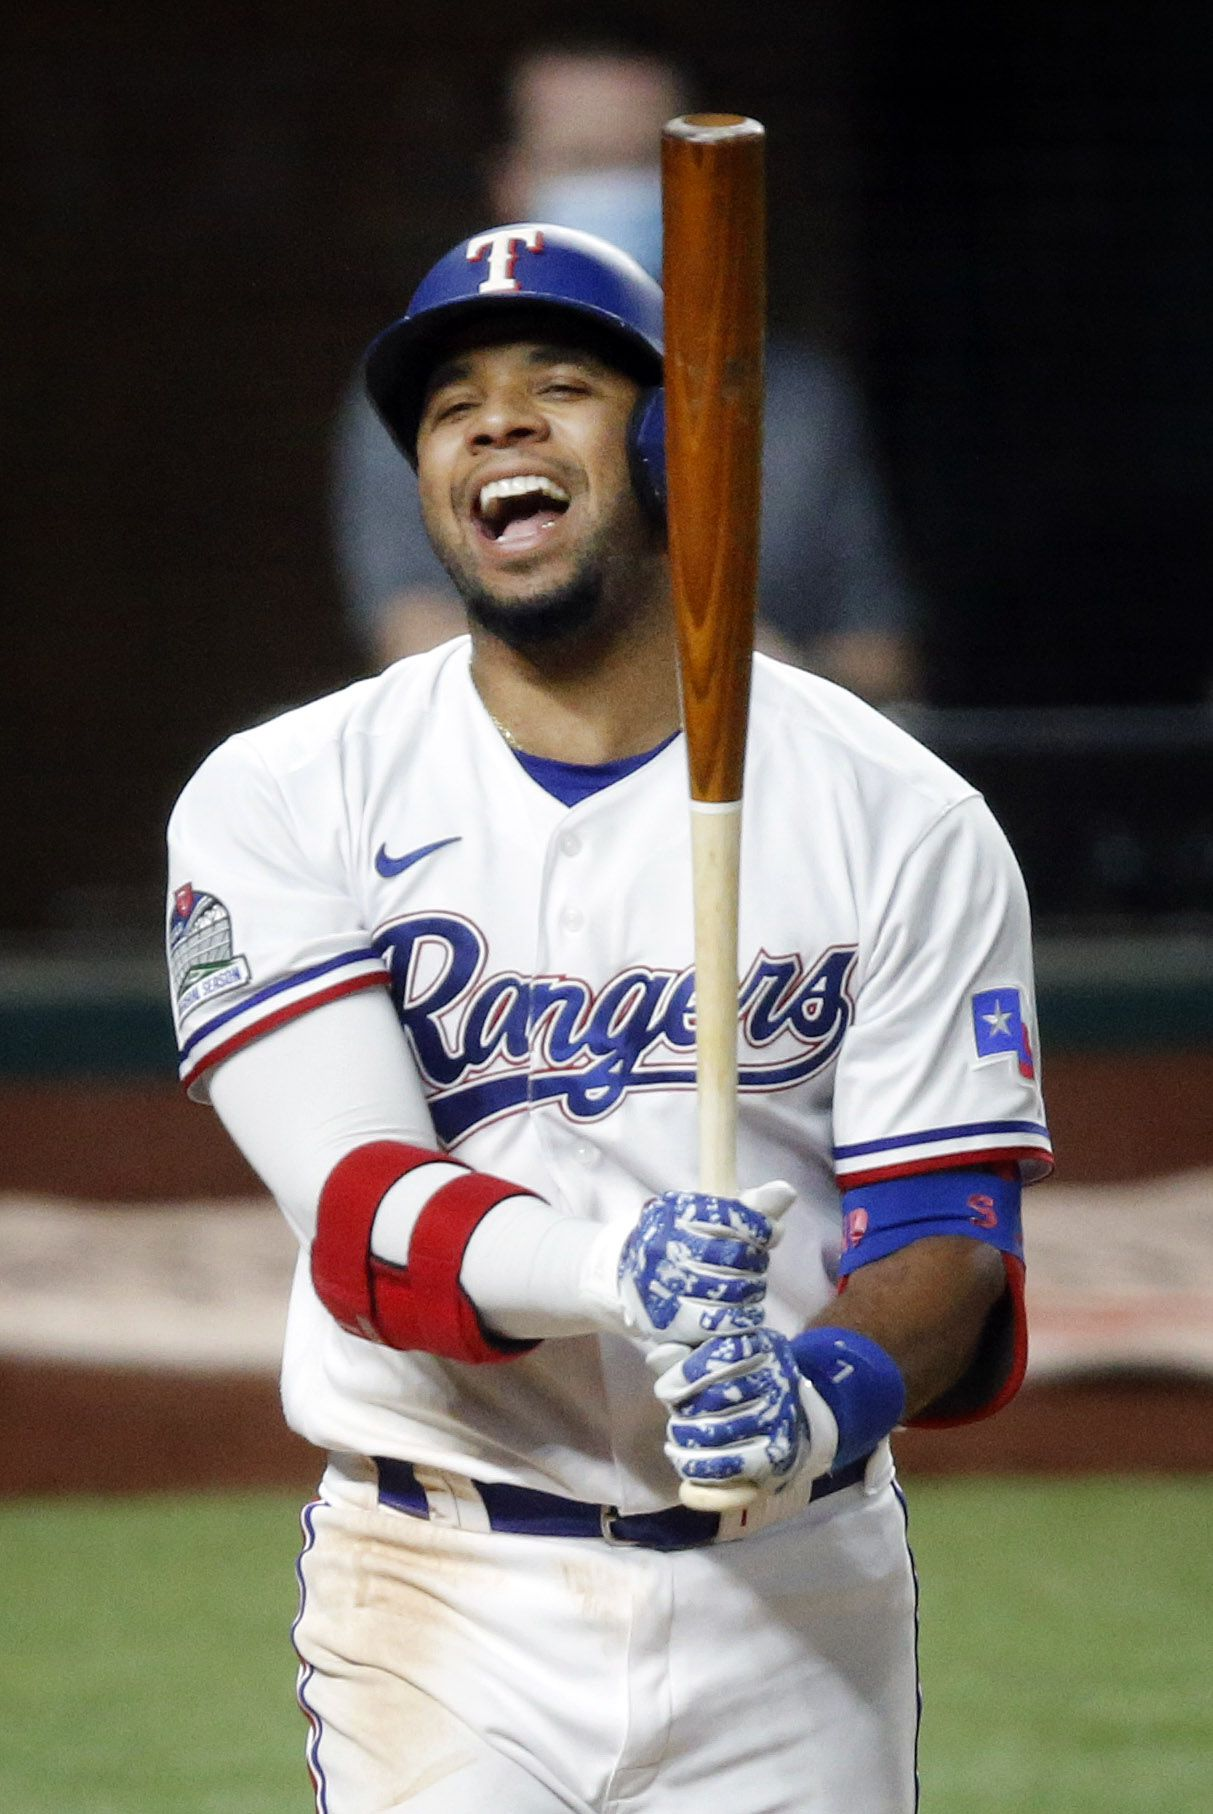 Texas Rangers shortstop Elvis Andrus (1) reacts after striking out against the Los Angeles Angels in the fourth inning at Globe Life Field in Arlington, Texas, Tuesday, September 8, 2020. (Tom Fox/The Dallas Morning News)